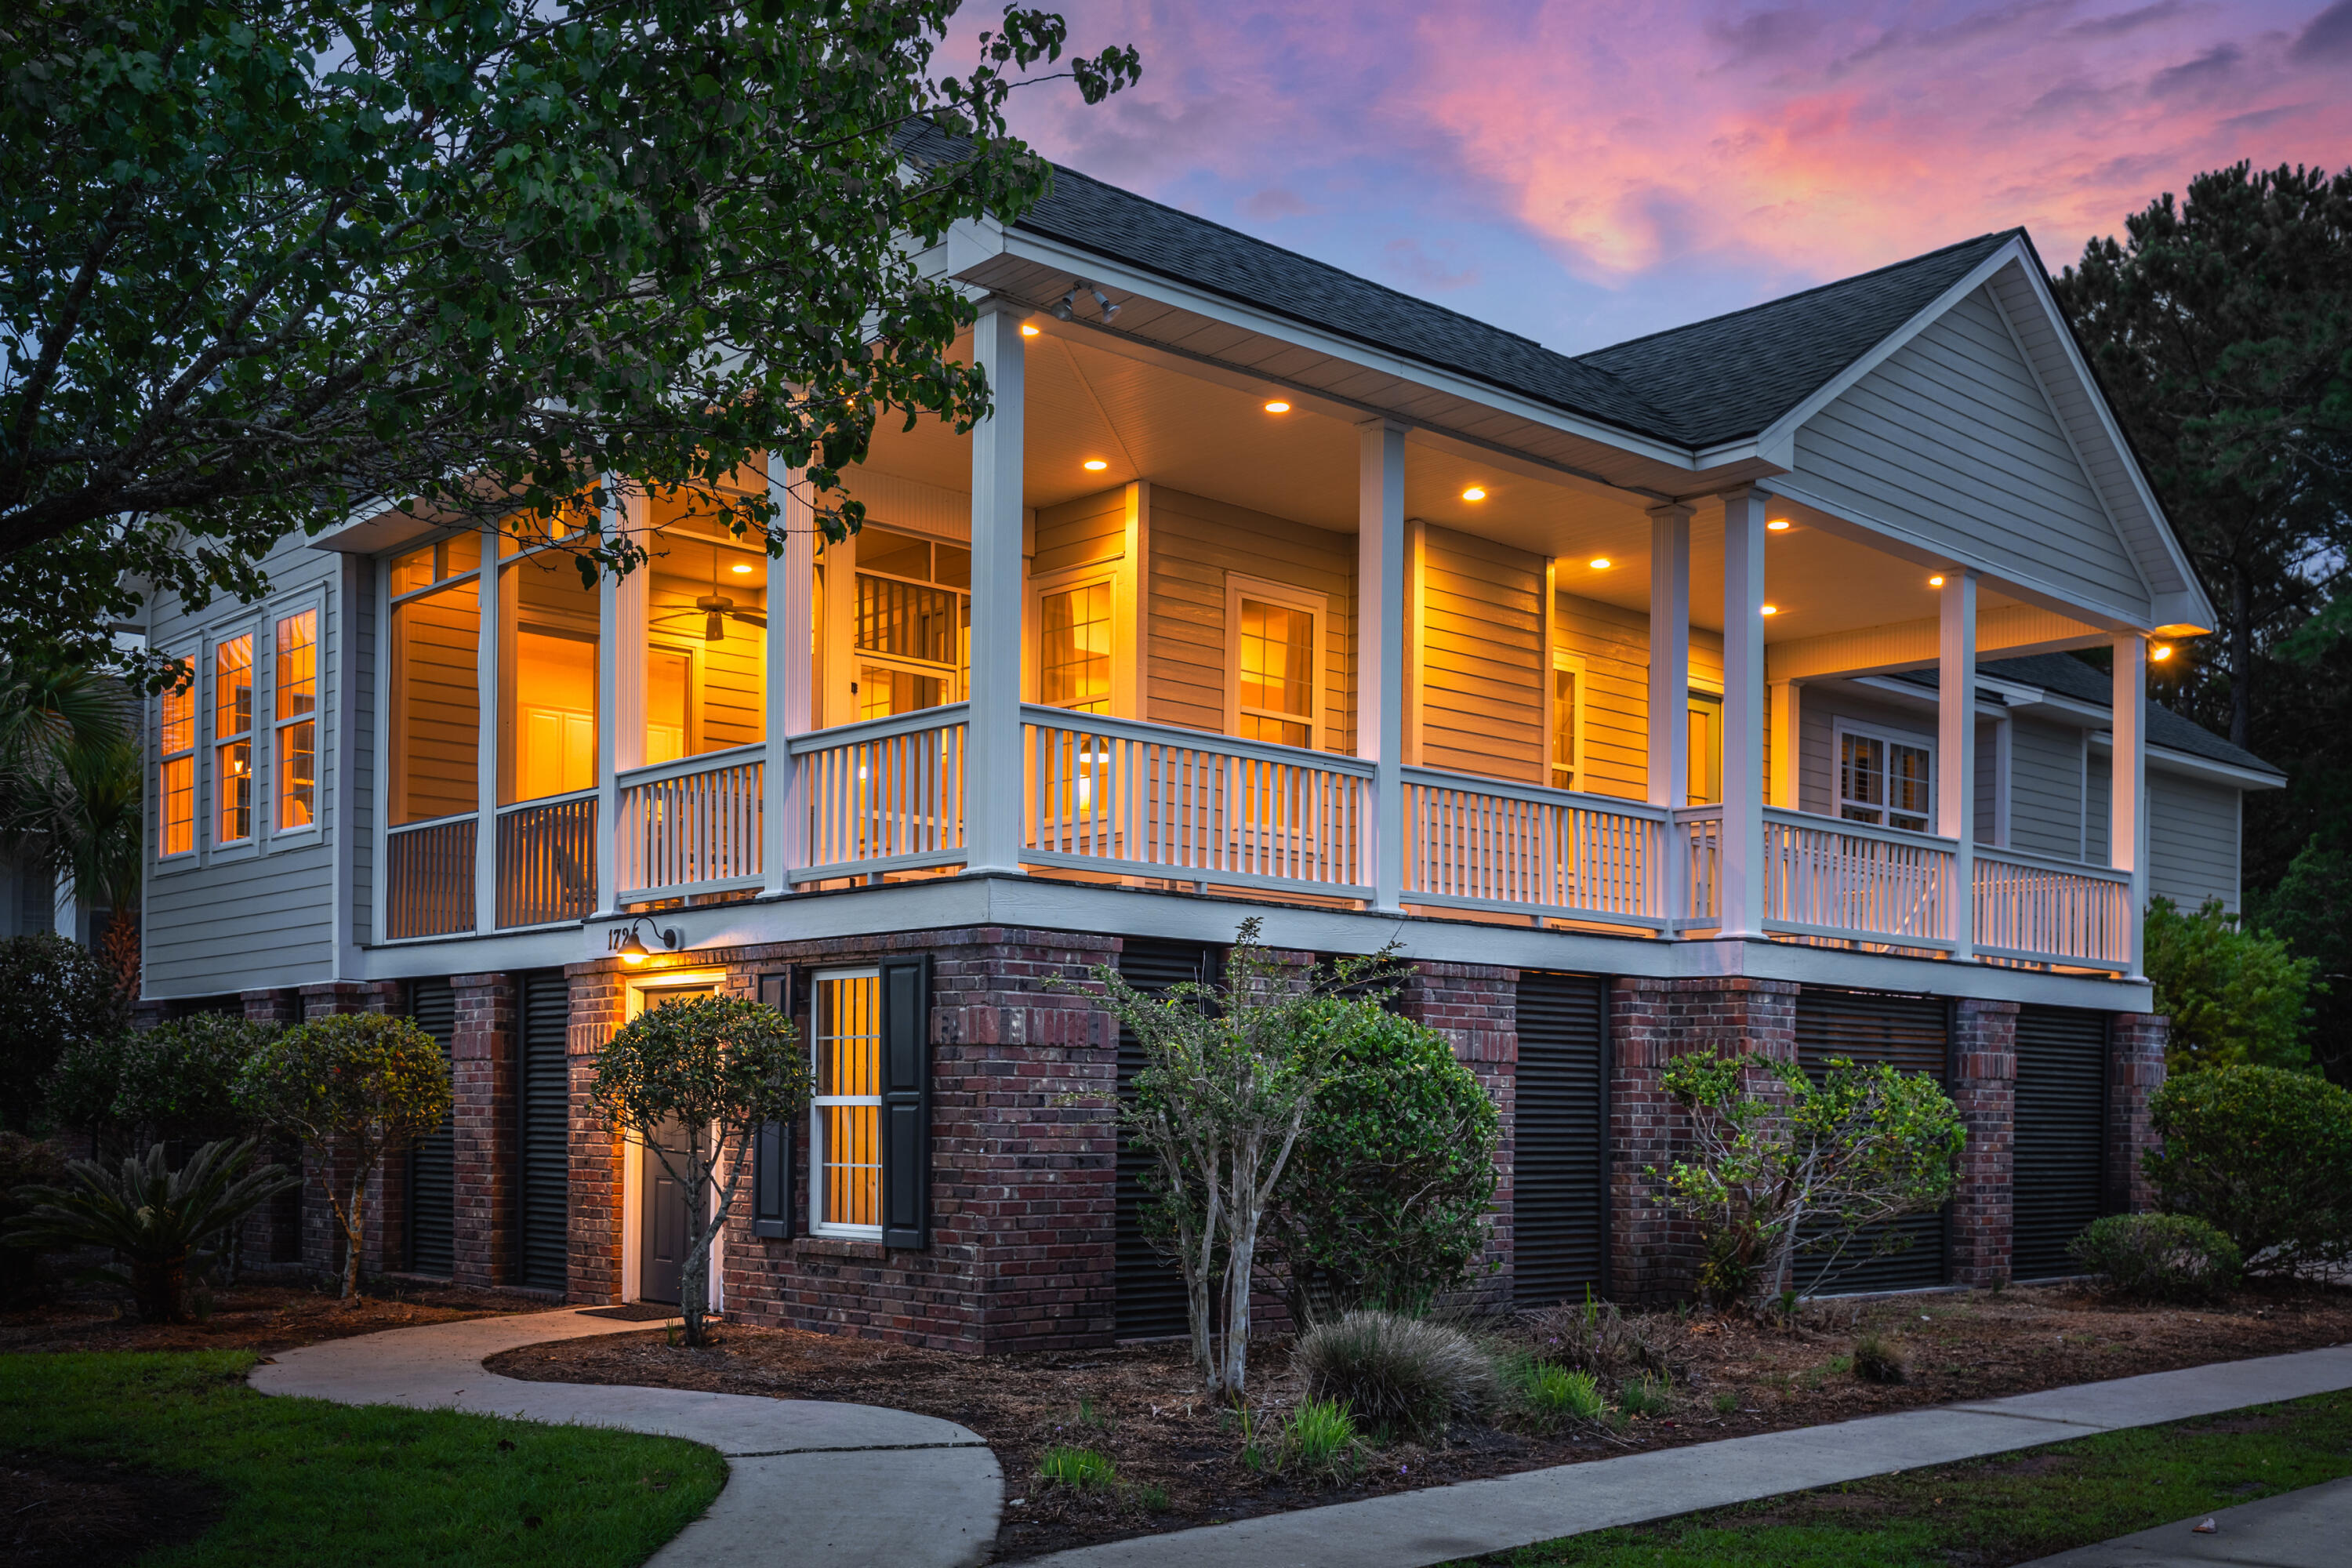 Rivertowne Country Club Homes For Sale - 1725 Rivertowne Country Club, Mount Pleasant, SC - 68